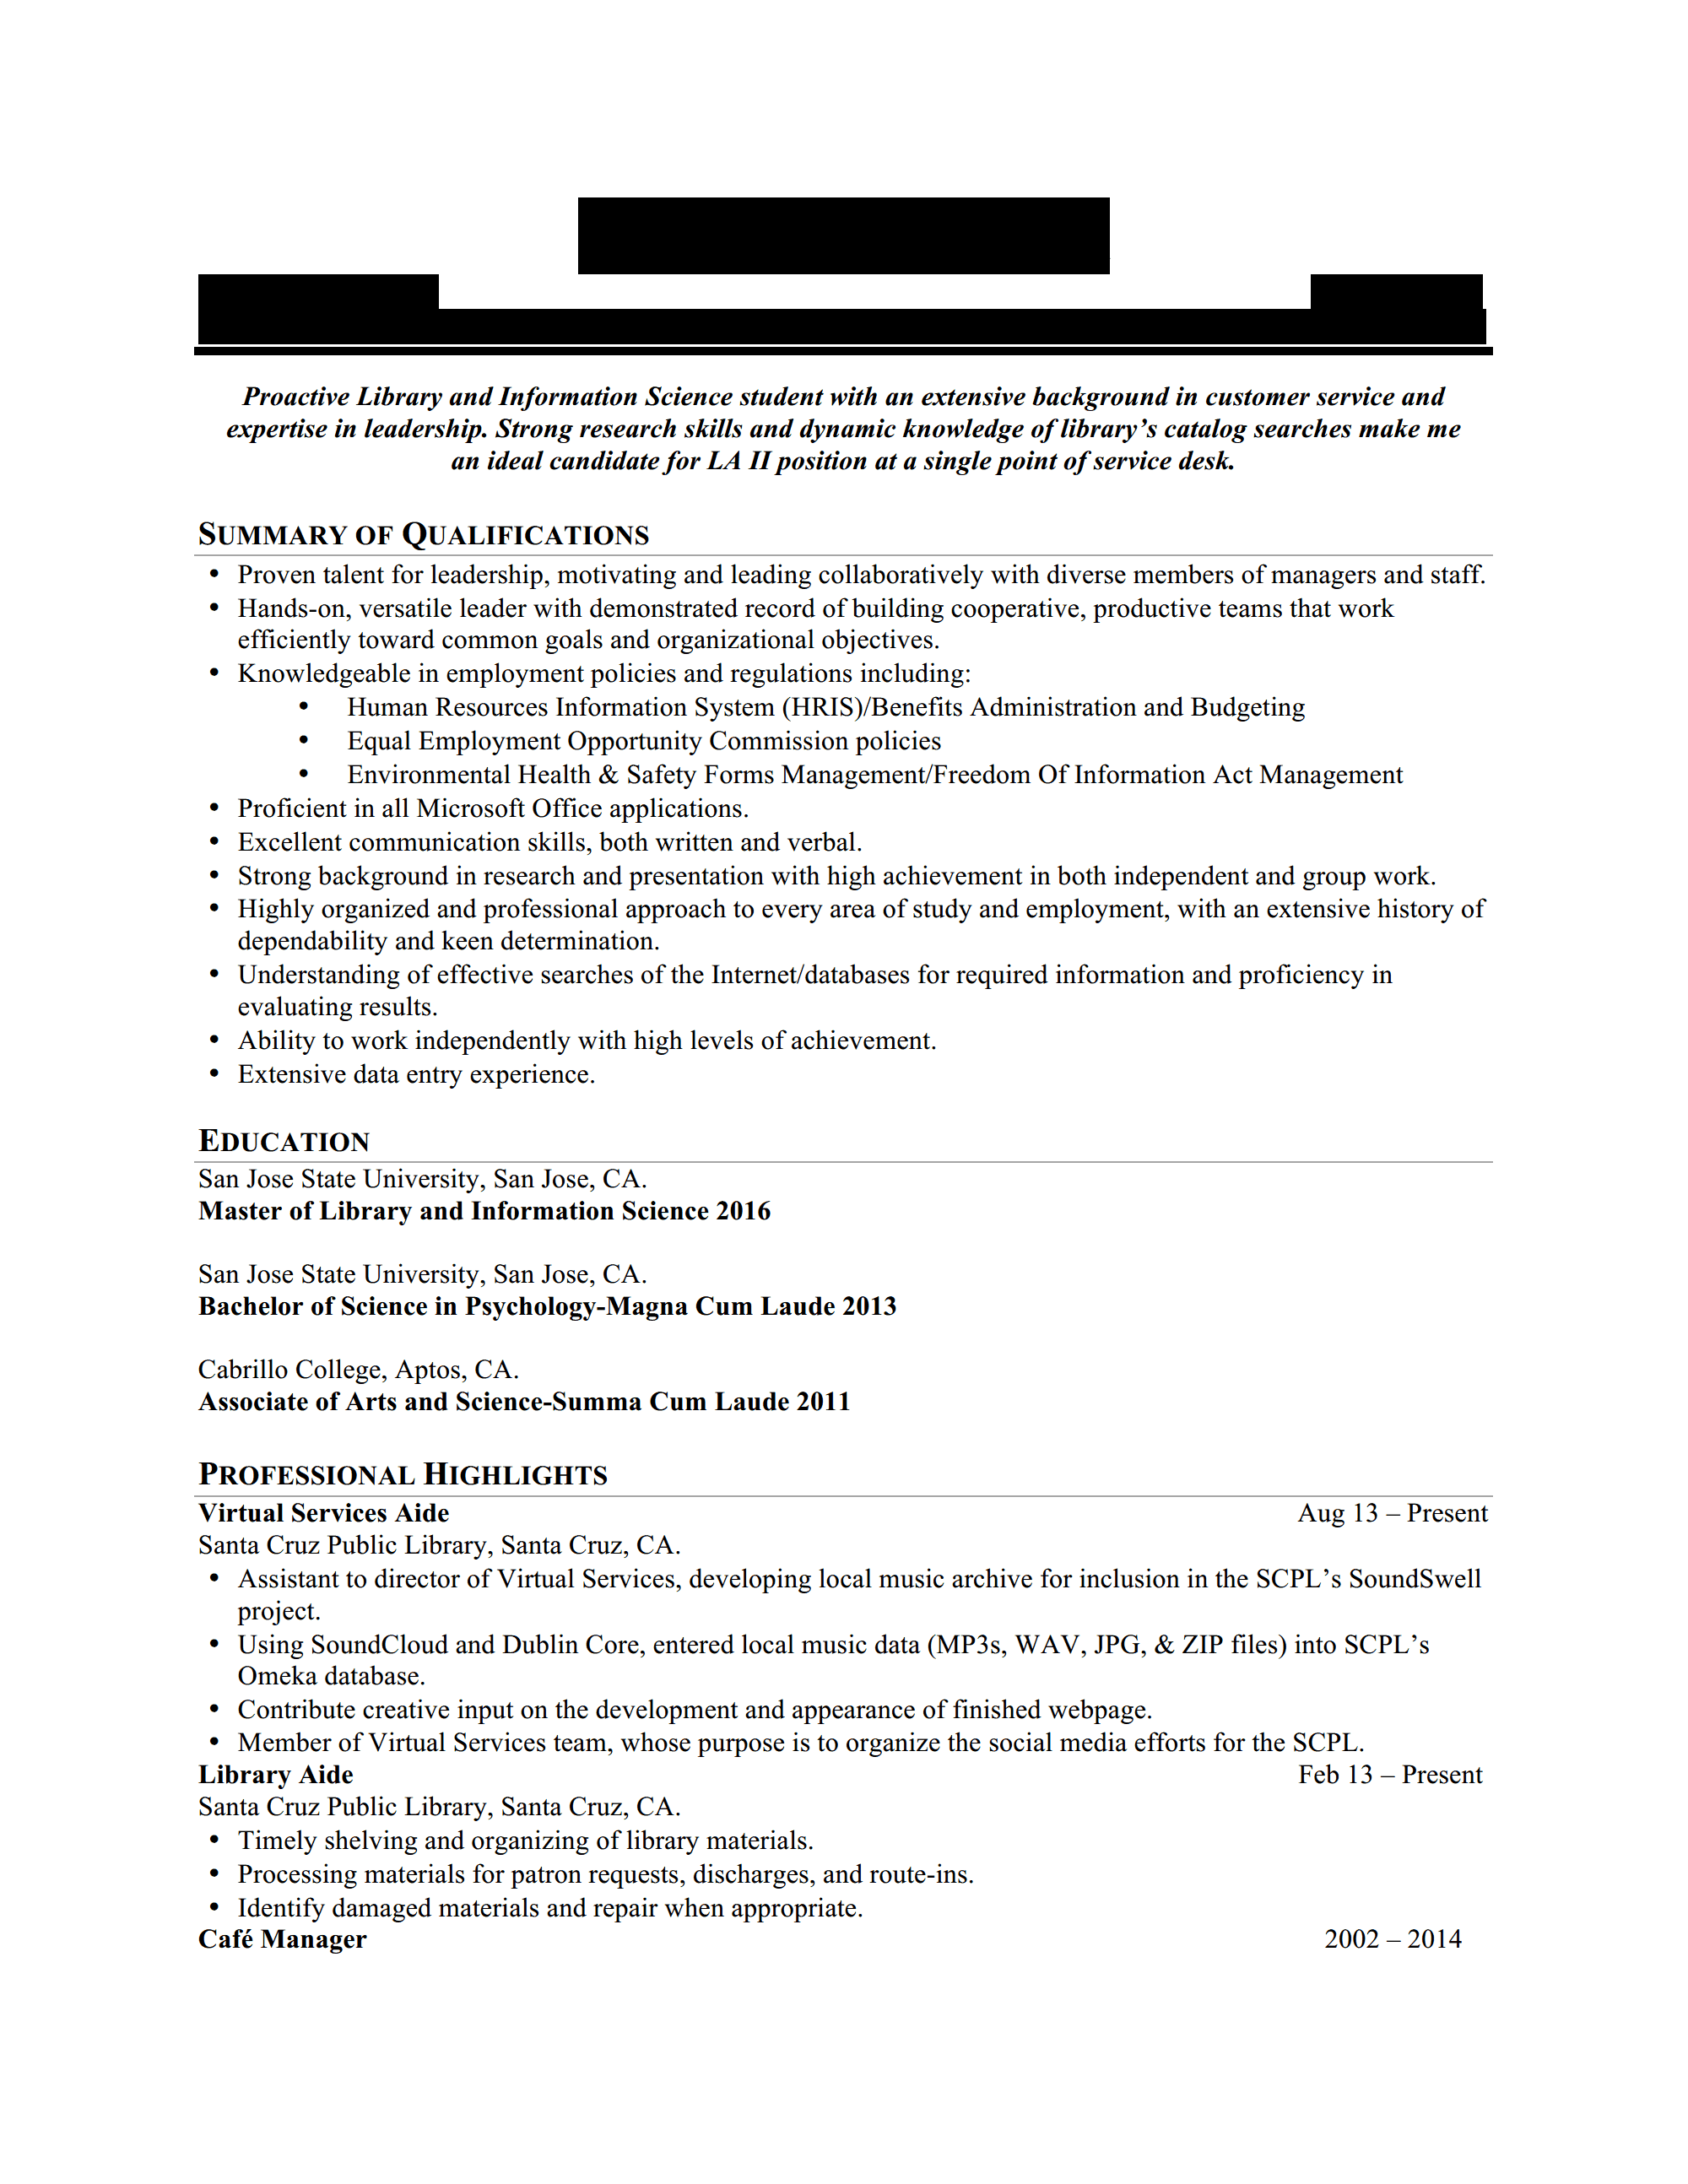 resume review hiring librarians page 8